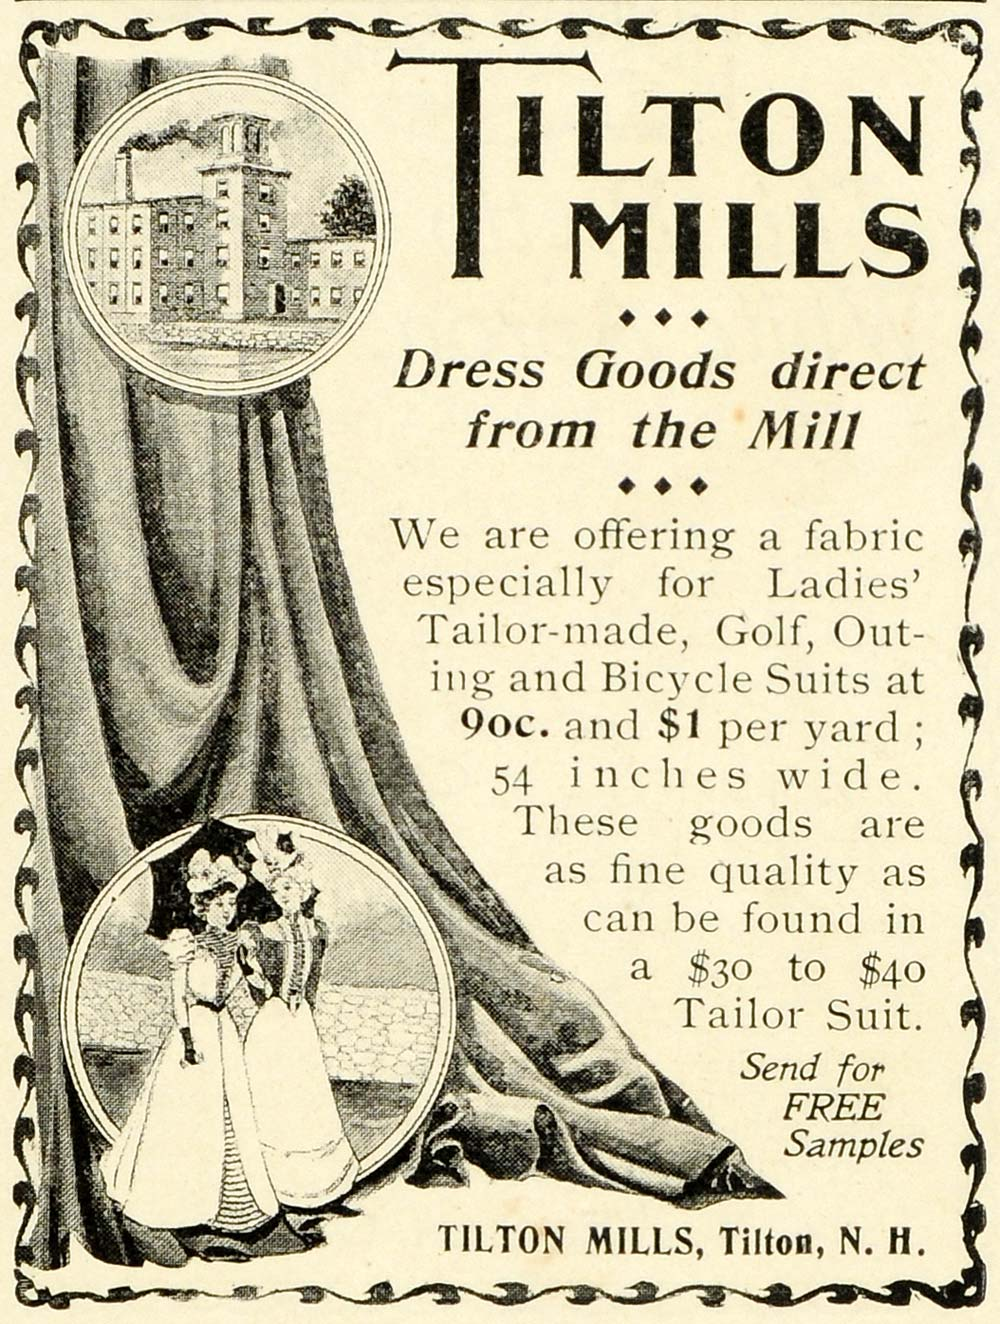 1899 Ad Tilton Mills Victorian Fashion Golf Bicycle Women's Recreation LHJ6